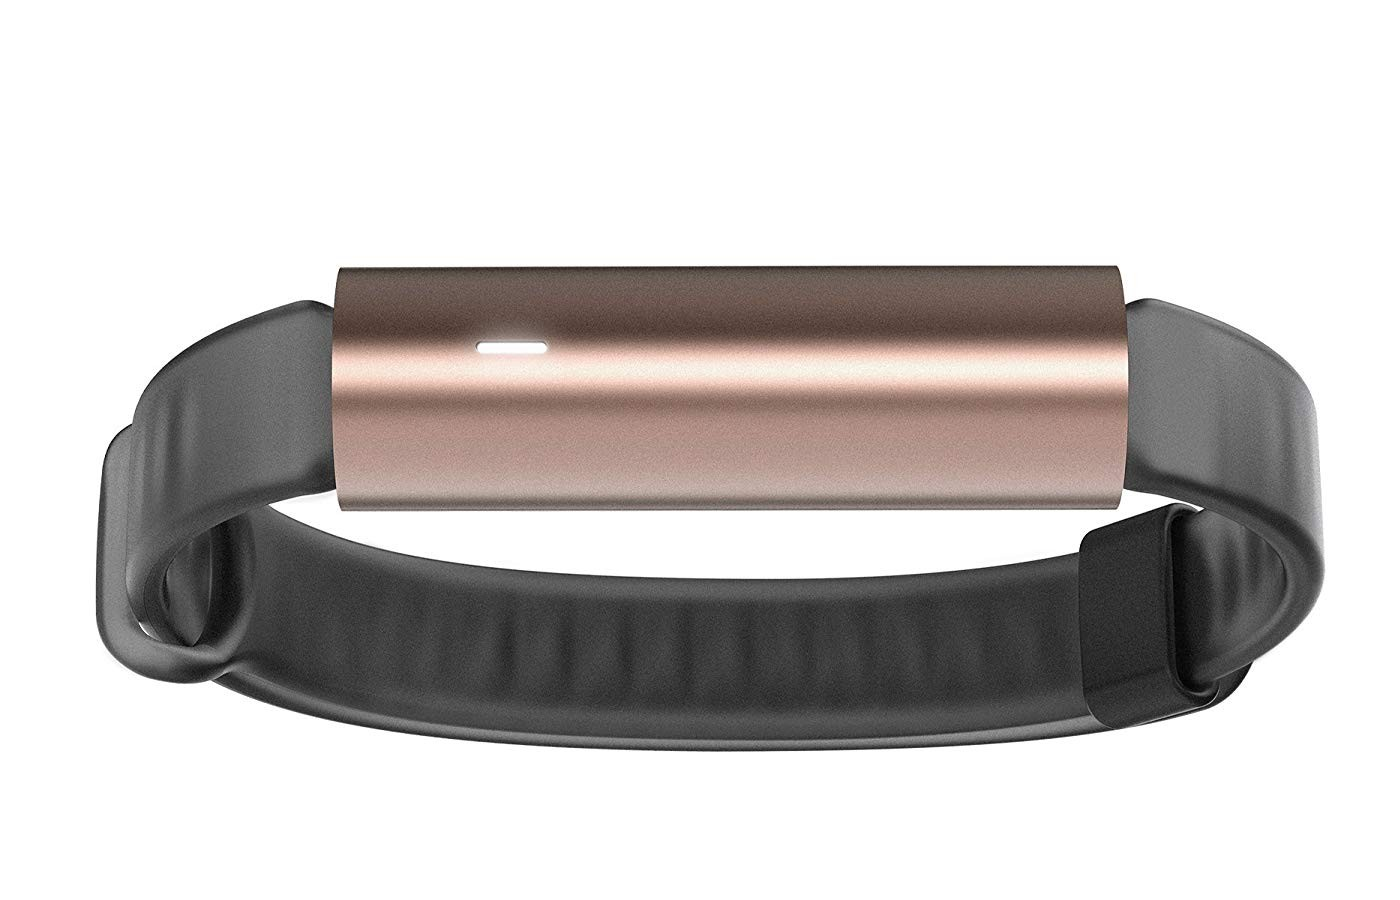 The Misfit Ray provides the essential features expected from a fitness tracker.